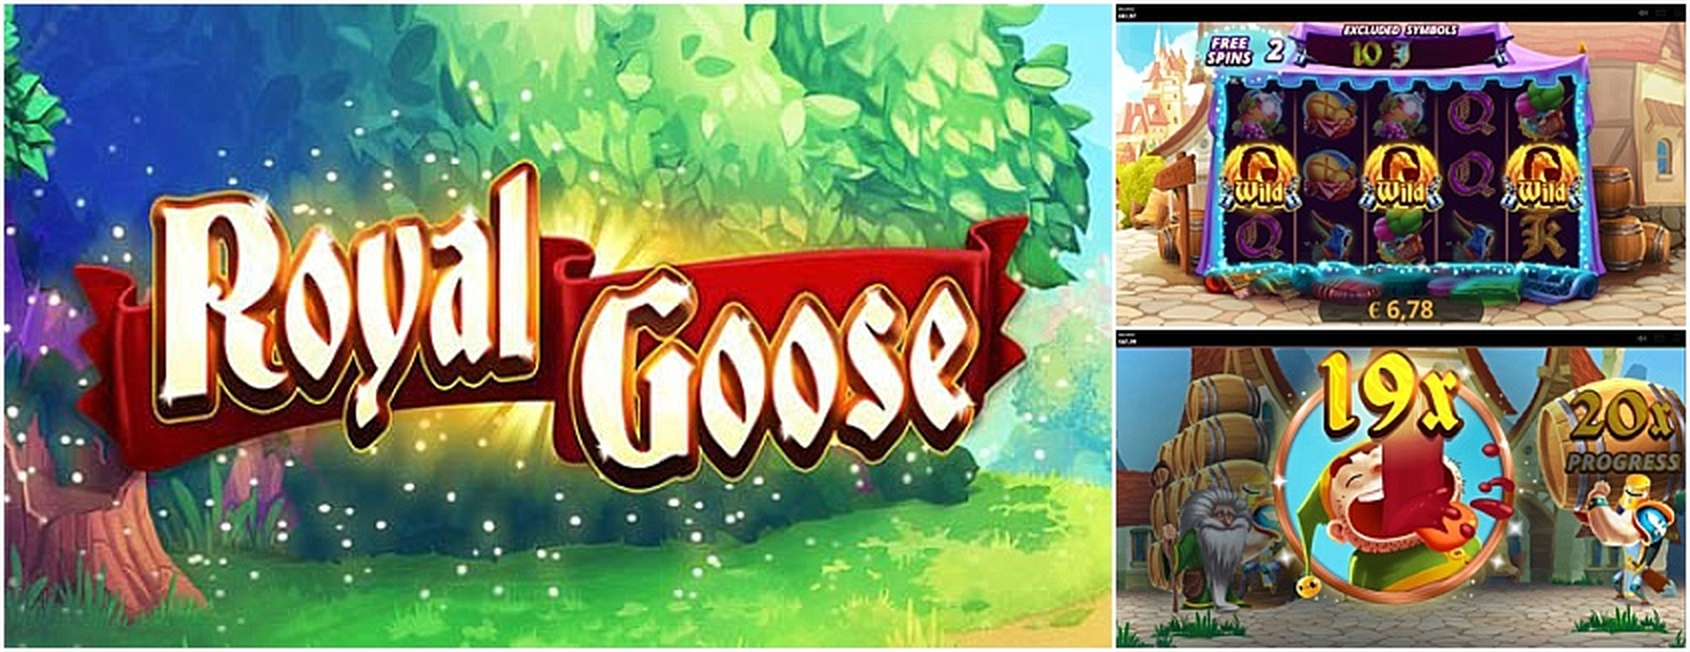 The Royal Goose Online Slot Demo Game by Cayetano Gaming